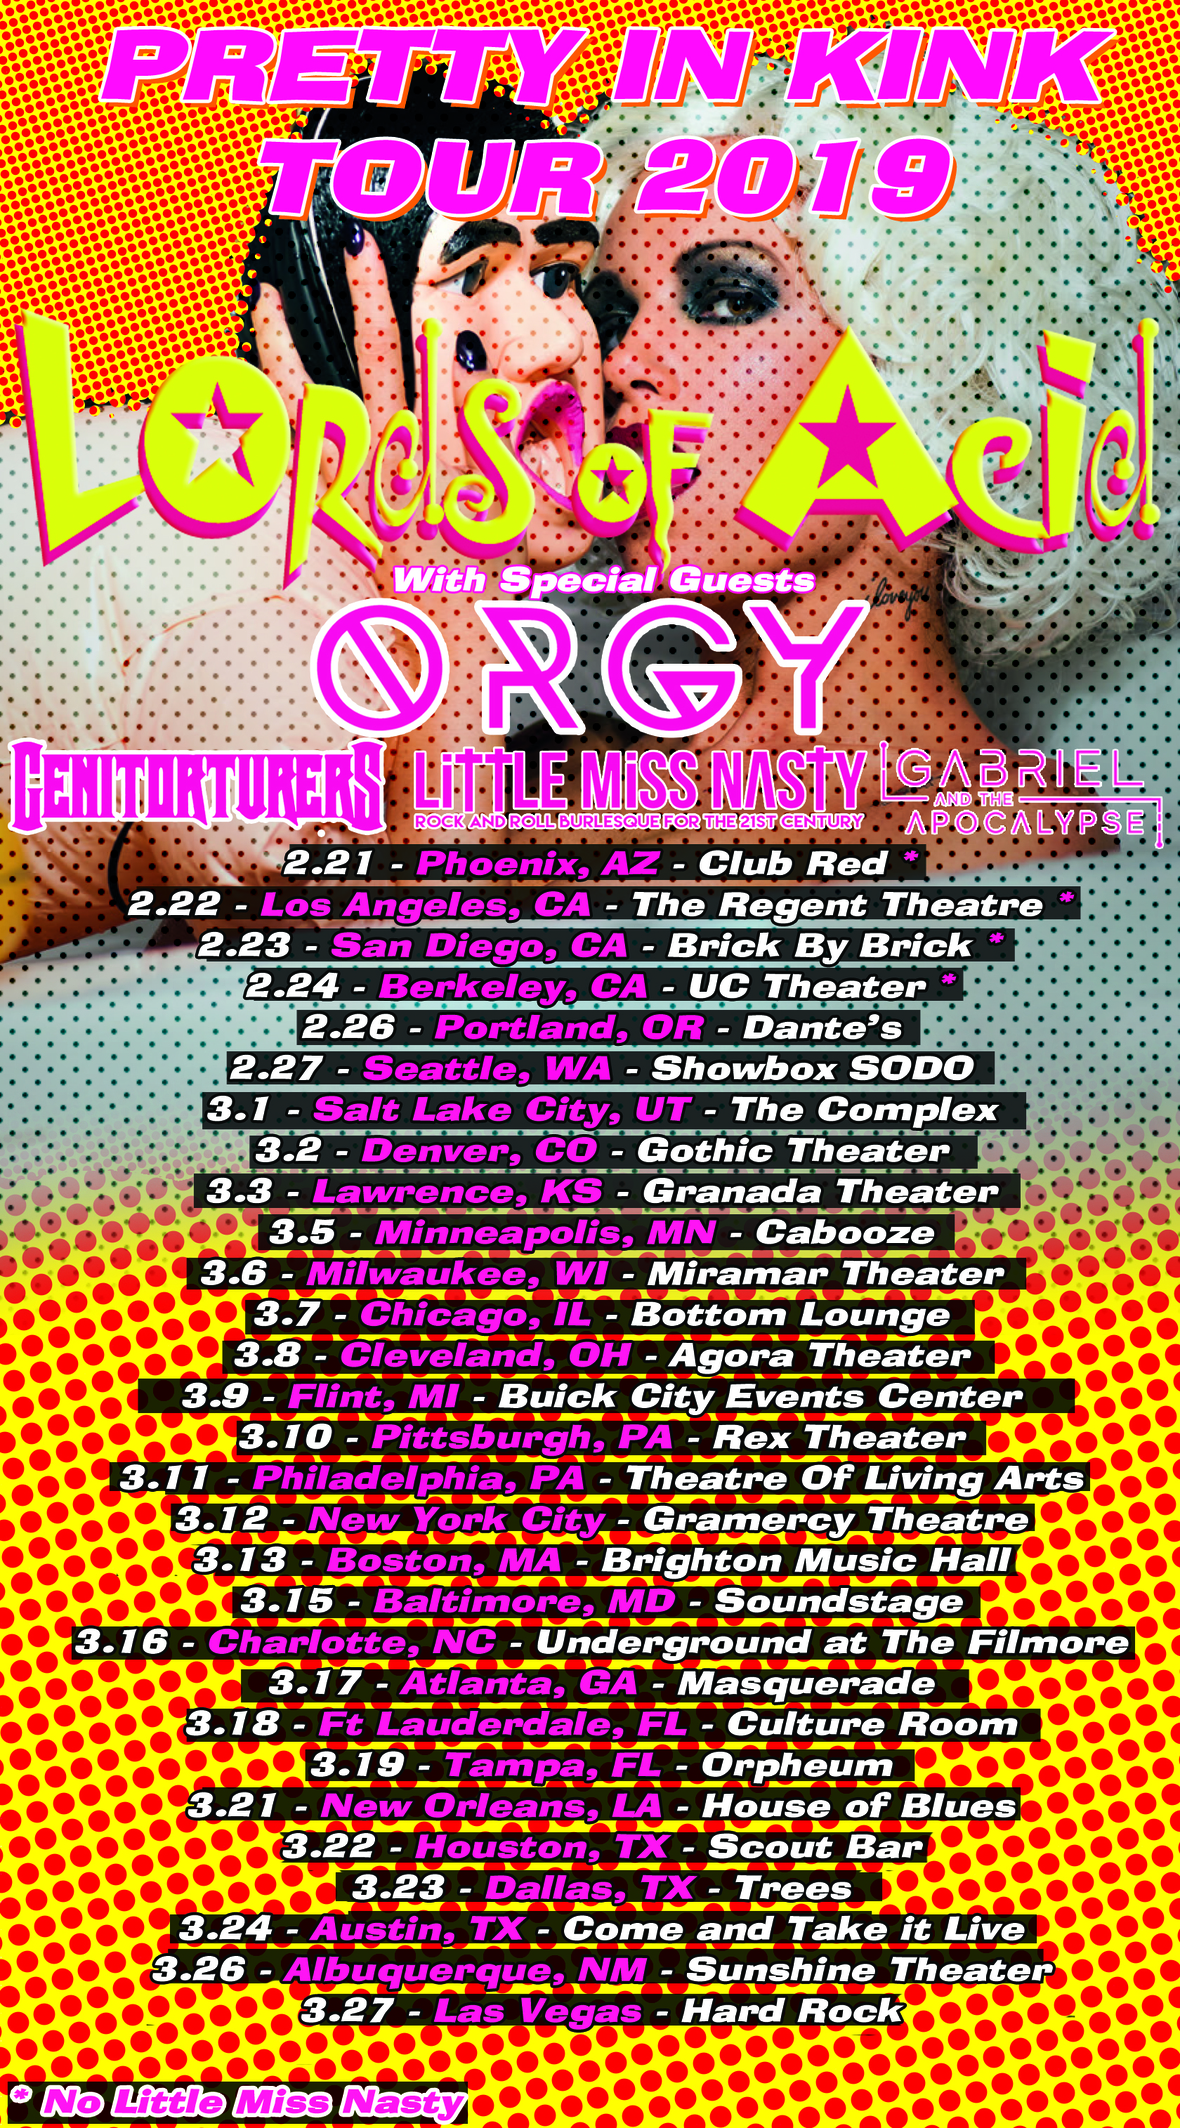 Lords Of Acid Announce Pretty In Kink Tour 2019 with Orgy, Genitorturers andmore